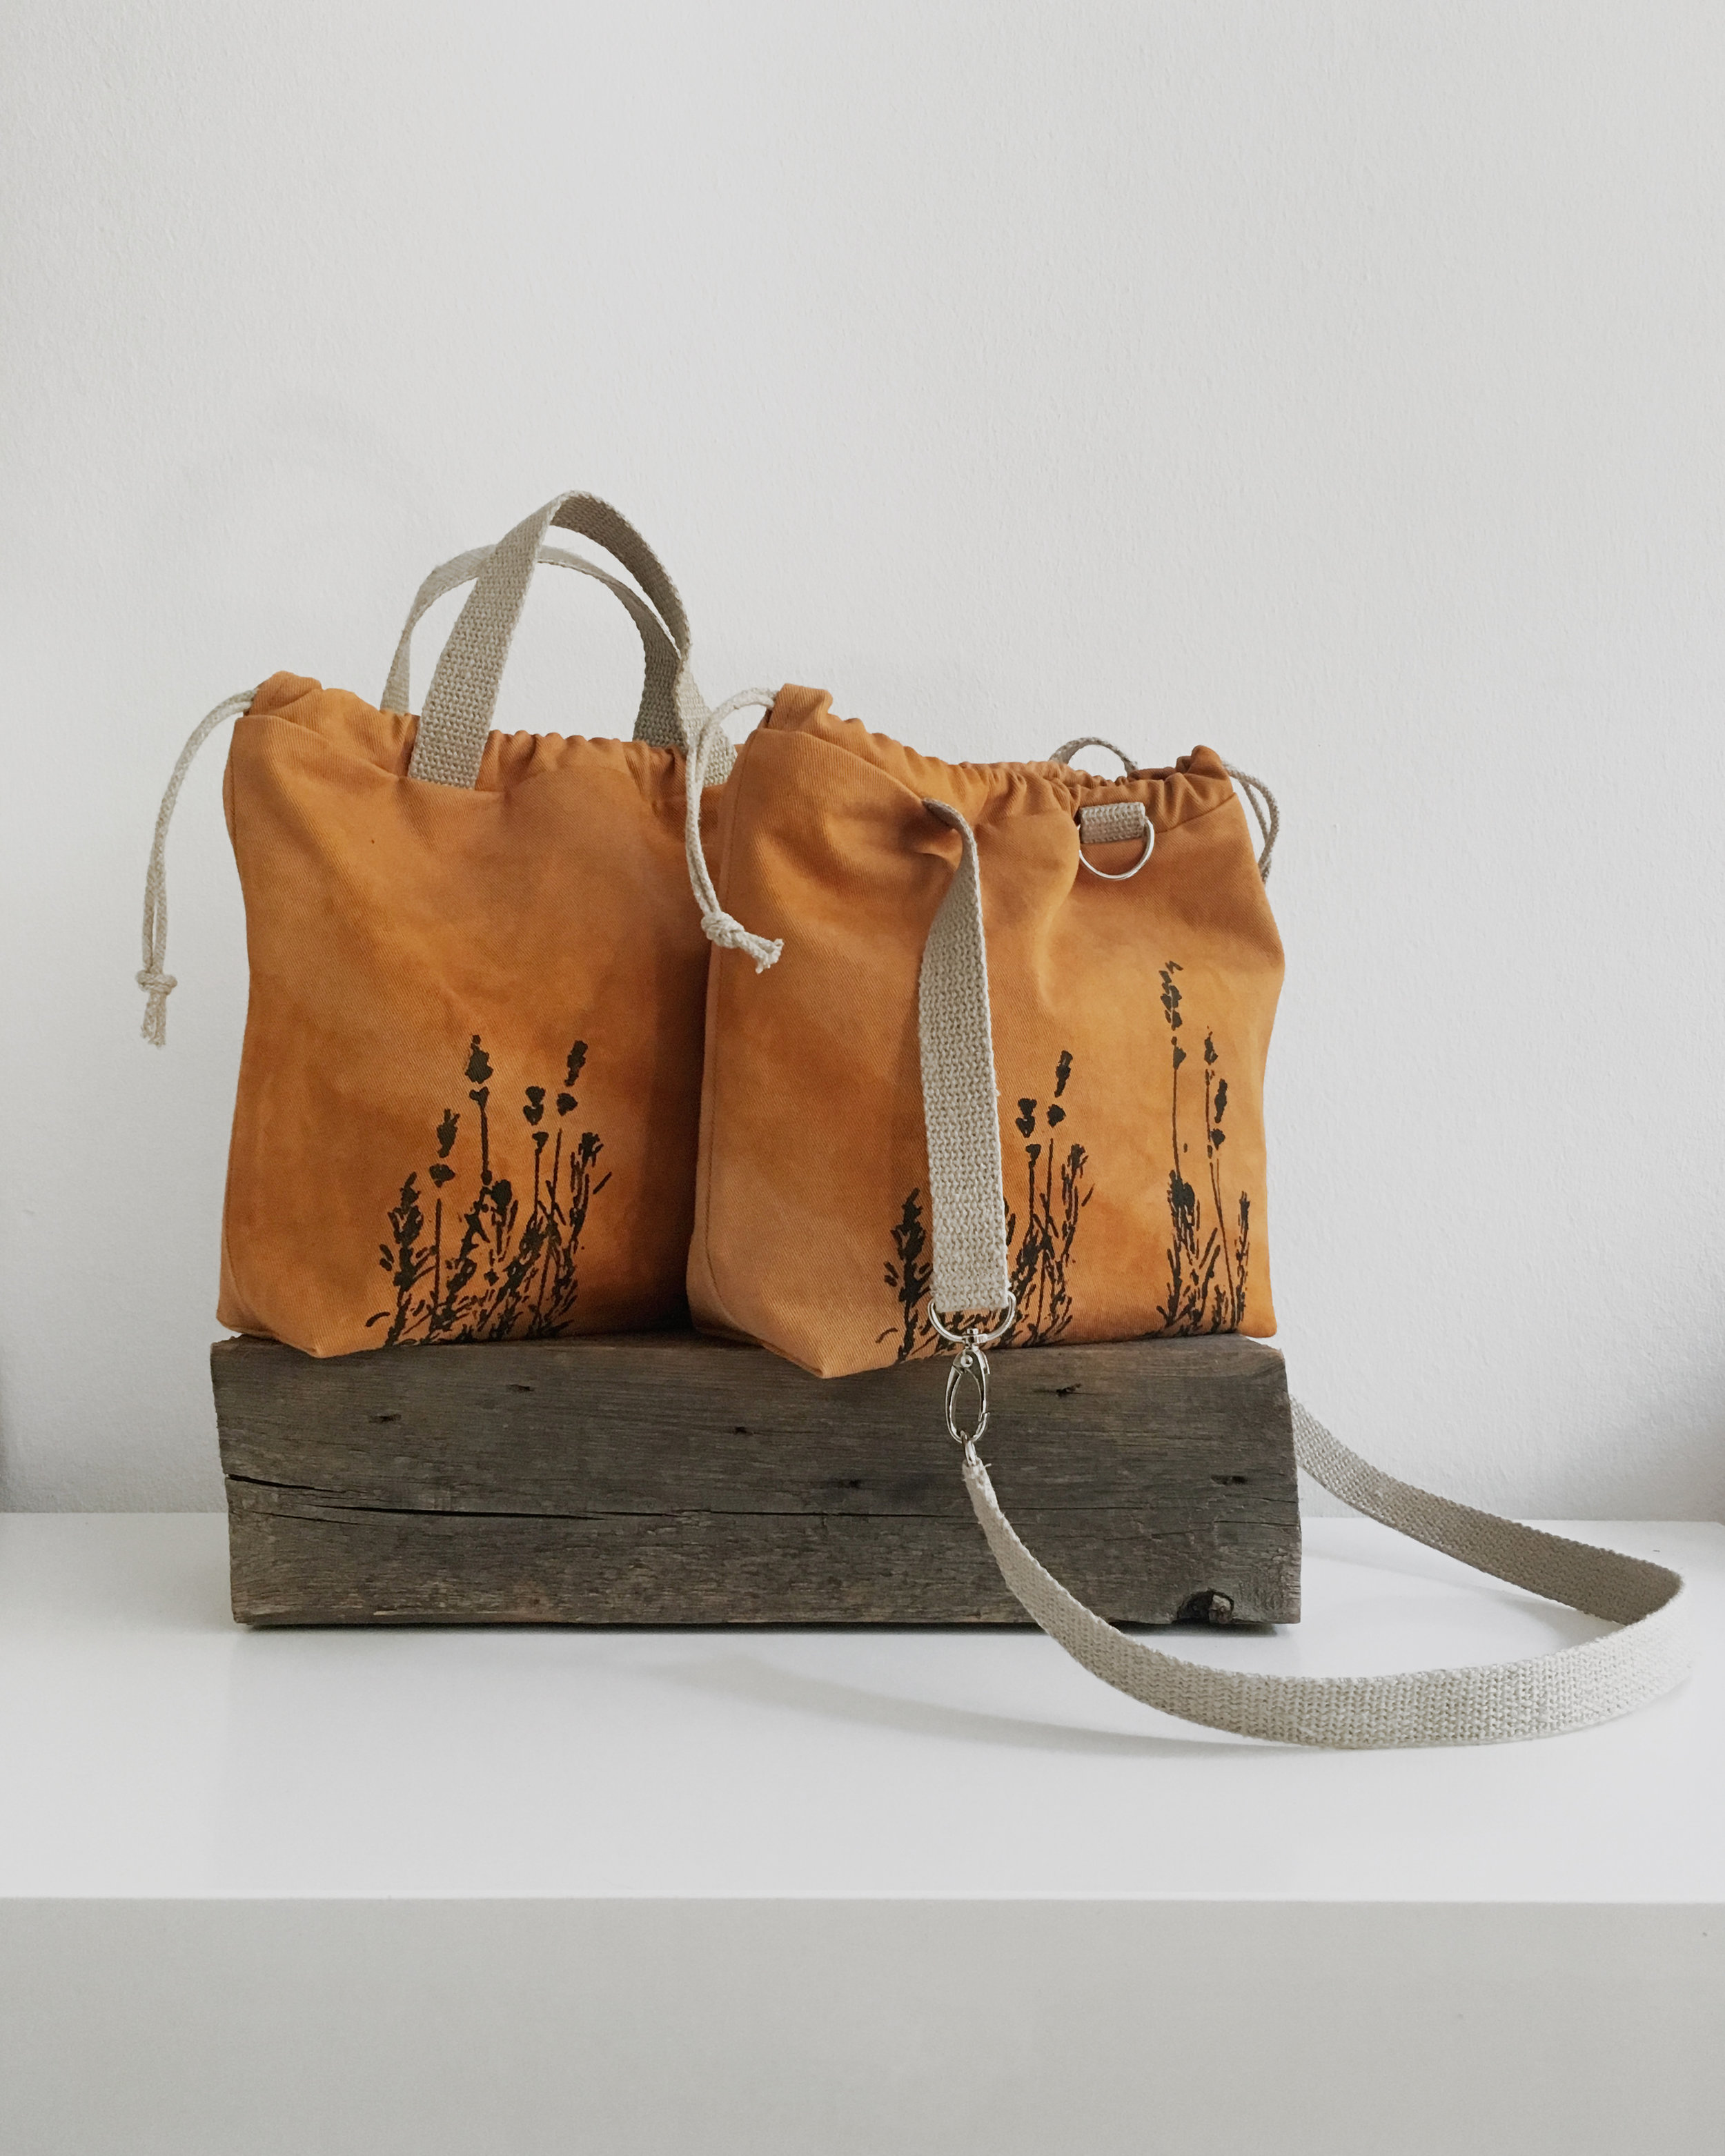 This rusty orange project bag was dyed with madder root and then overdyed with marigolds